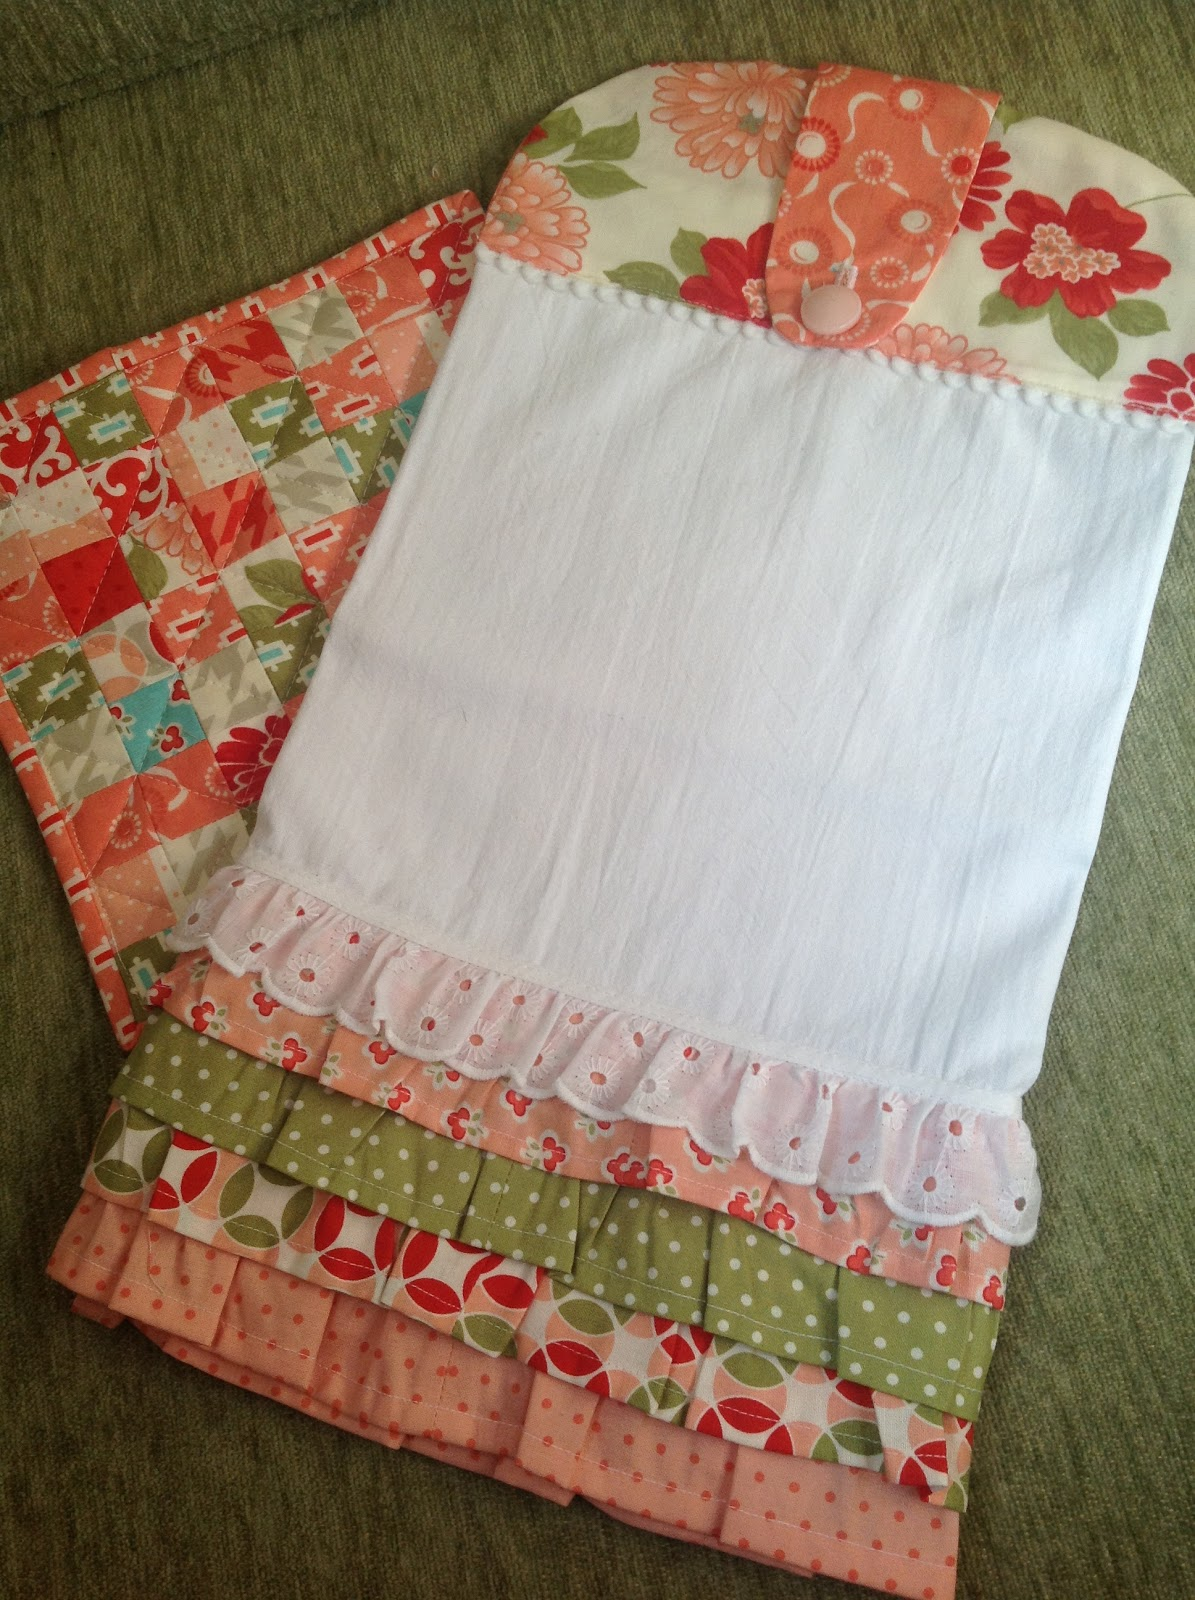 Kitchen Towel and Potholder Sets Are Great Gifts - Quilting Digest